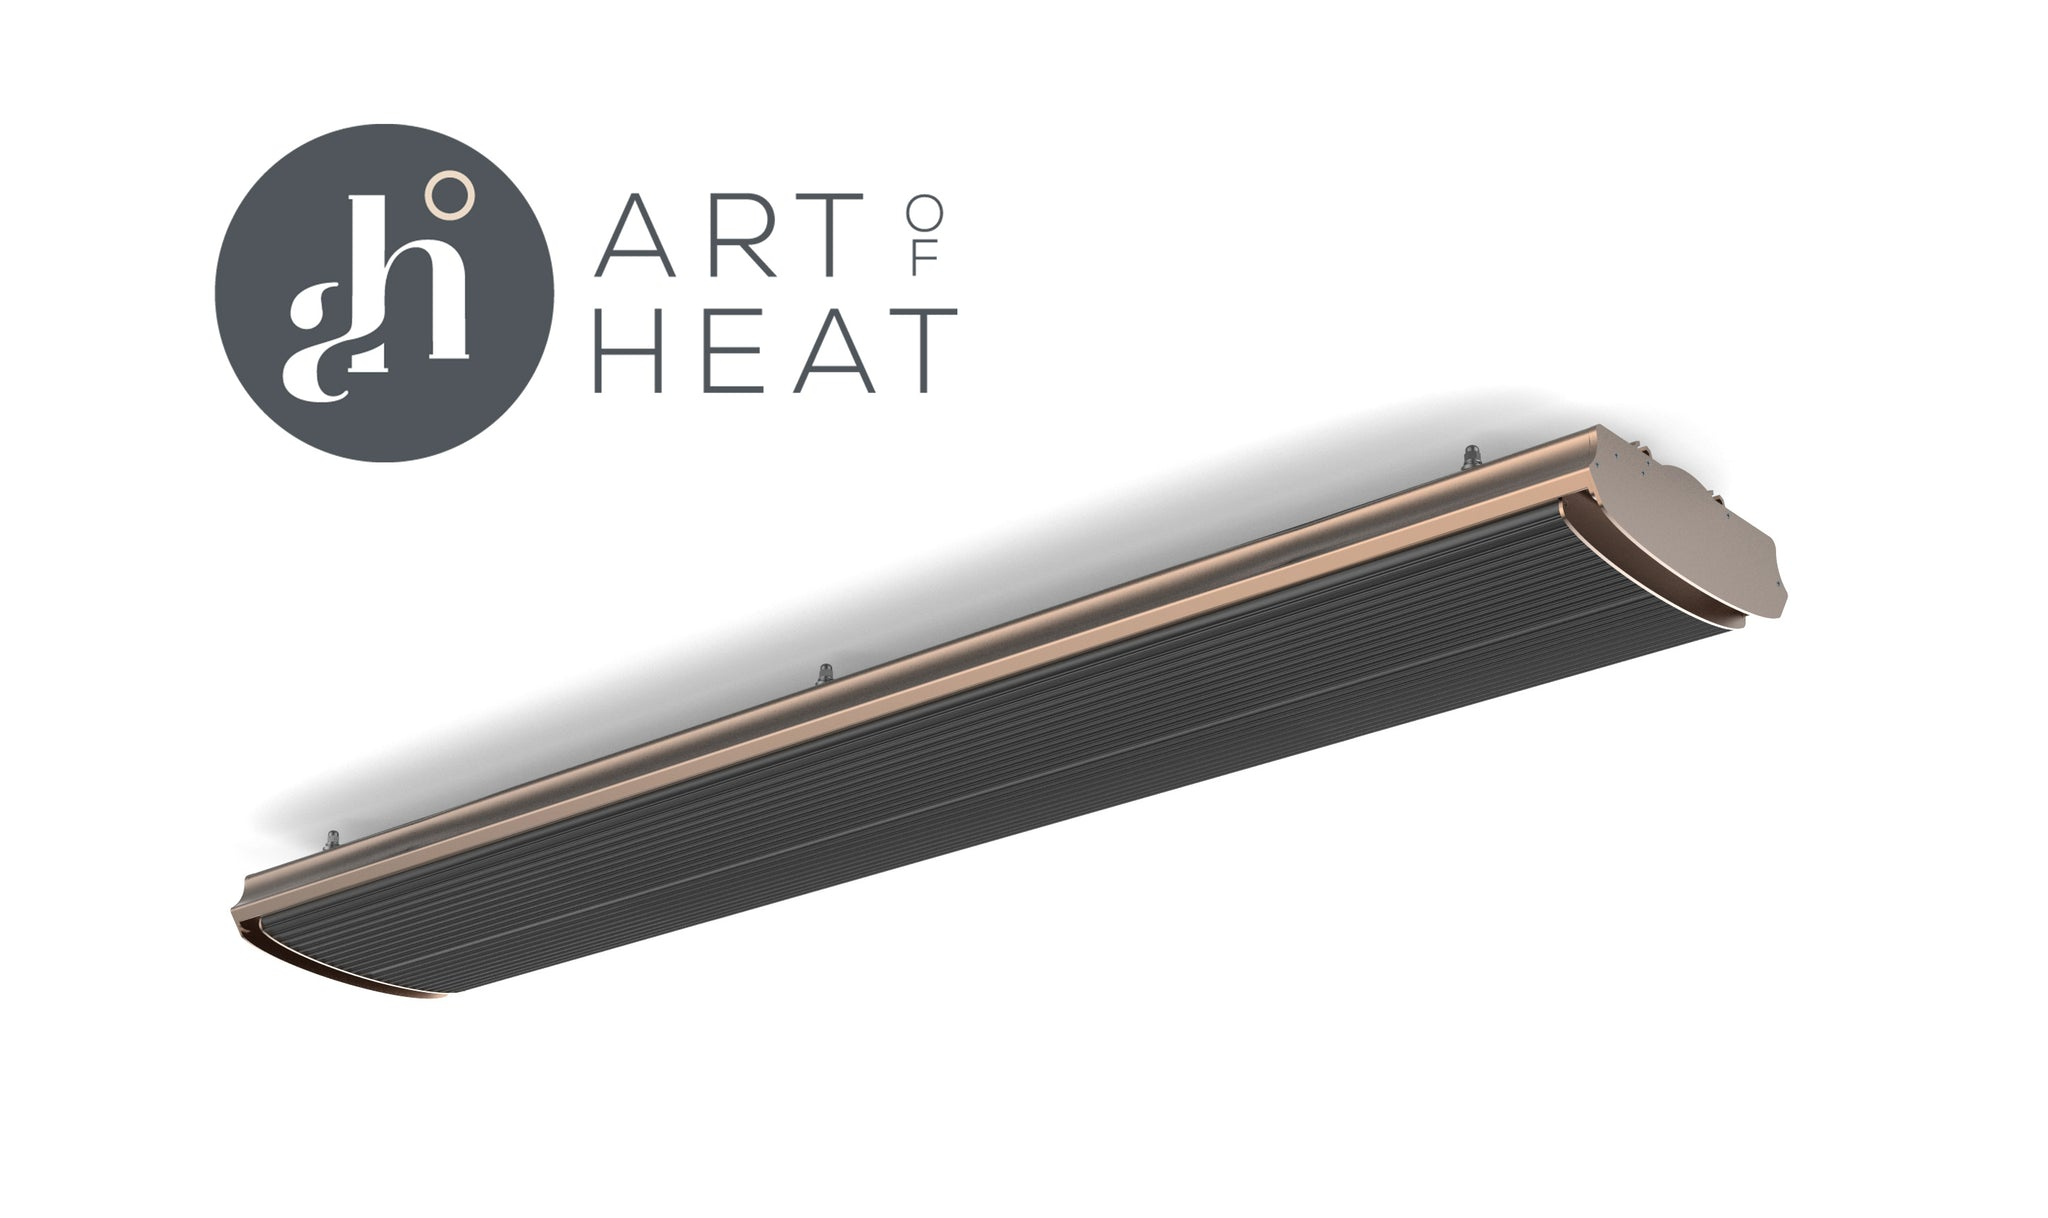 Sleek Series Outdoor Heater - Price Includes Packaging & Delivery